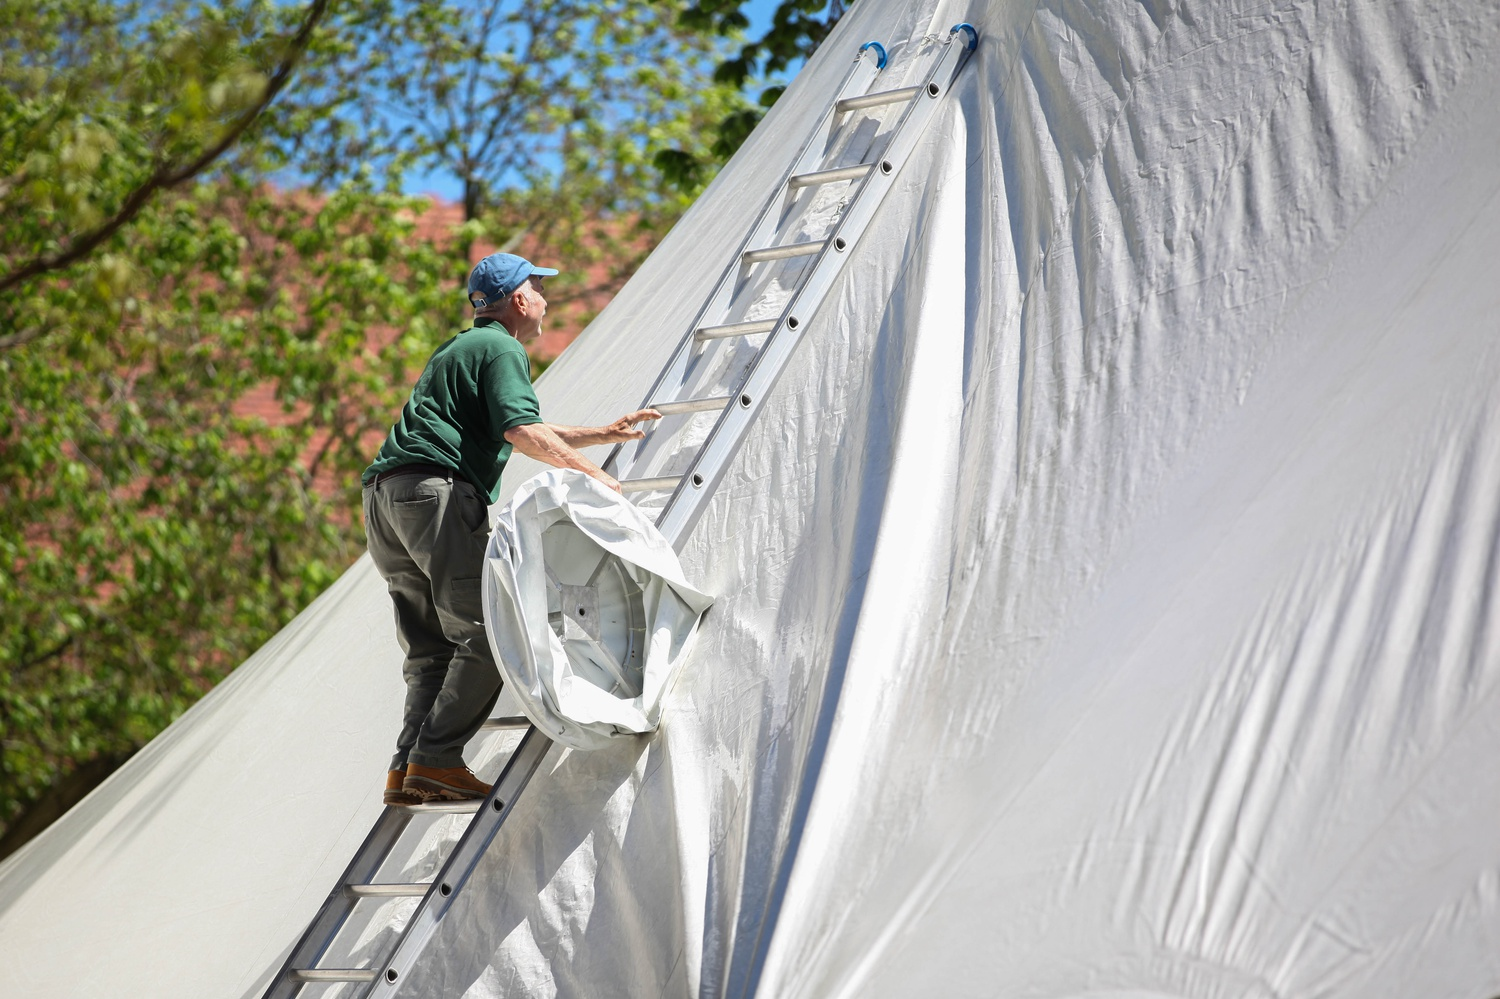 In preparation for Commencement, contracted employees from the William Blanchard Company install a tent in Tercentenary Theatre.